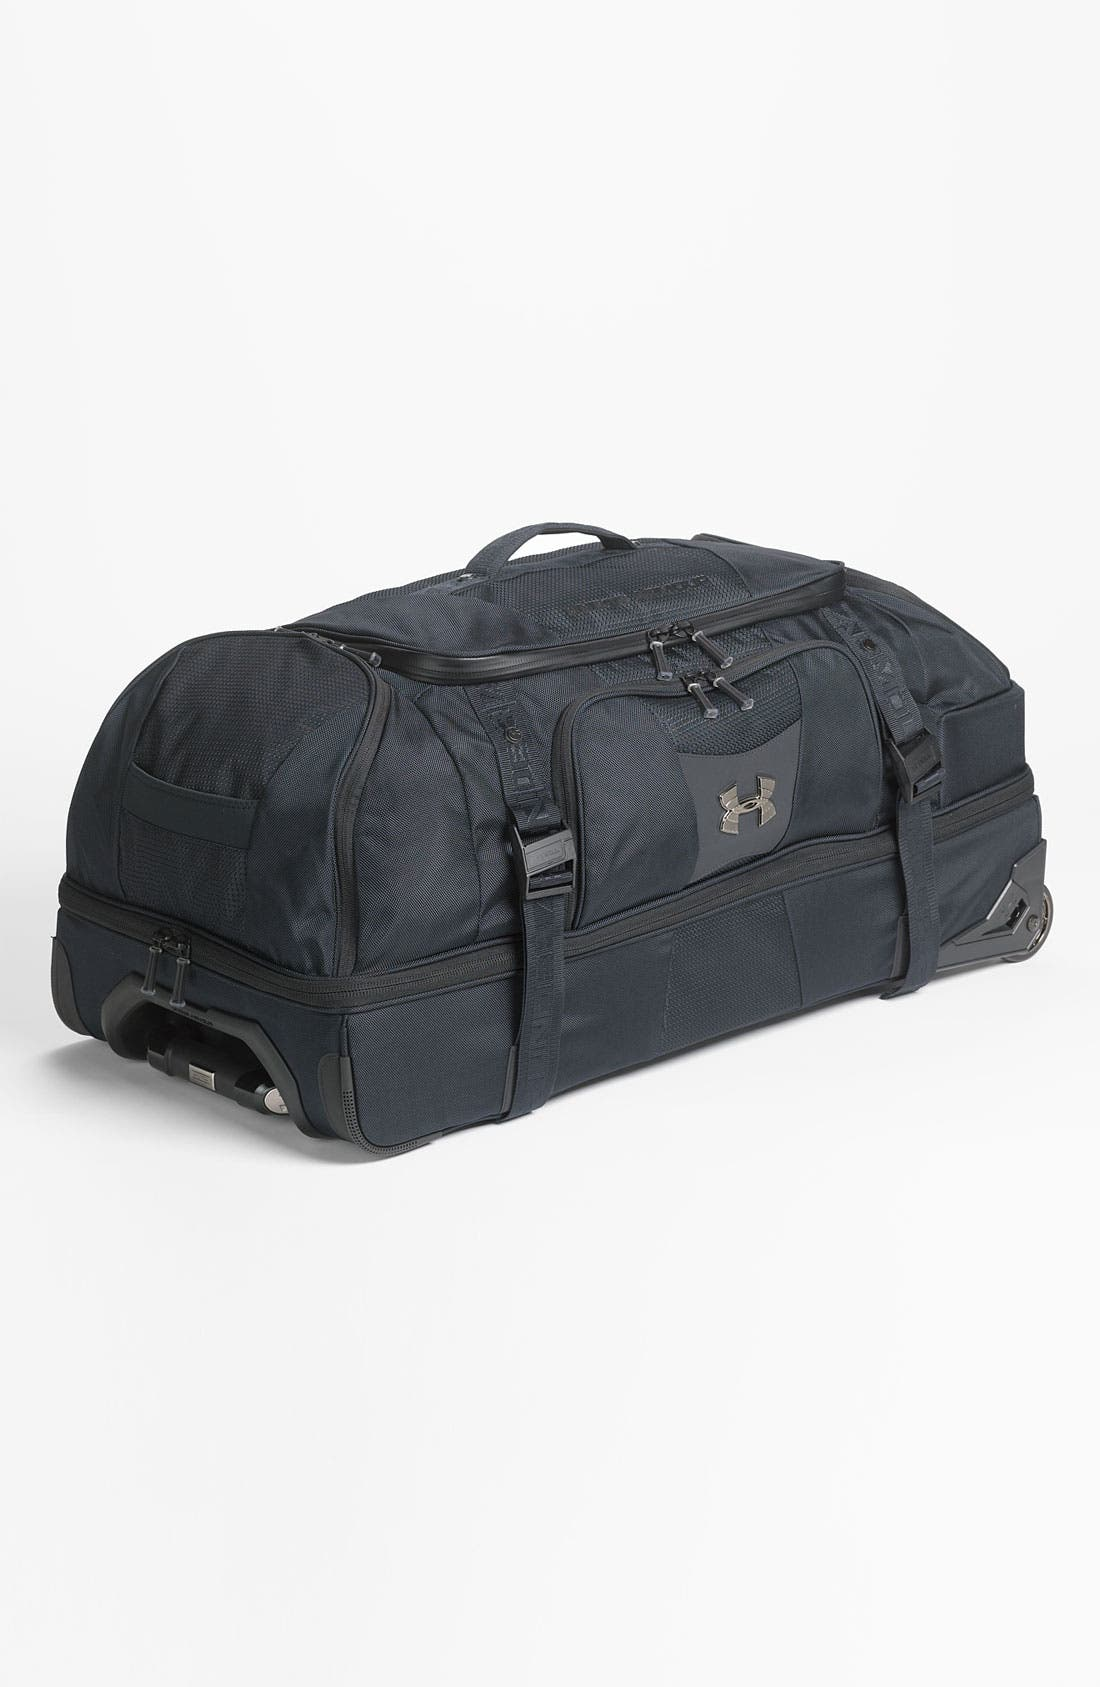 Main Image - Under Armour 'Elite' Rolling Duffel Bag